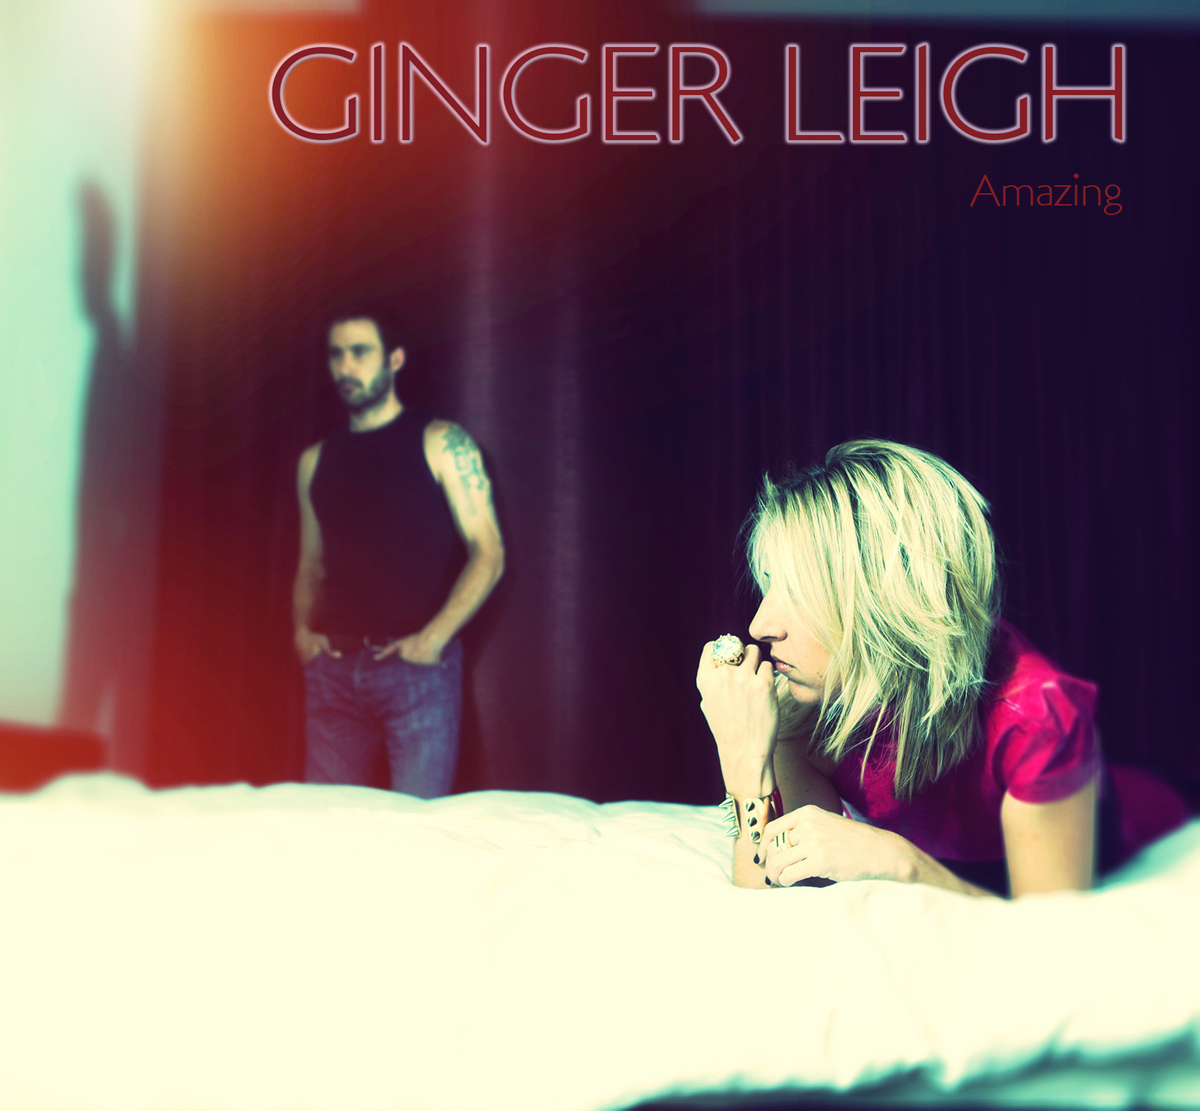 GINGER_LEIGH_CD_COVER_AMAZING.jpg